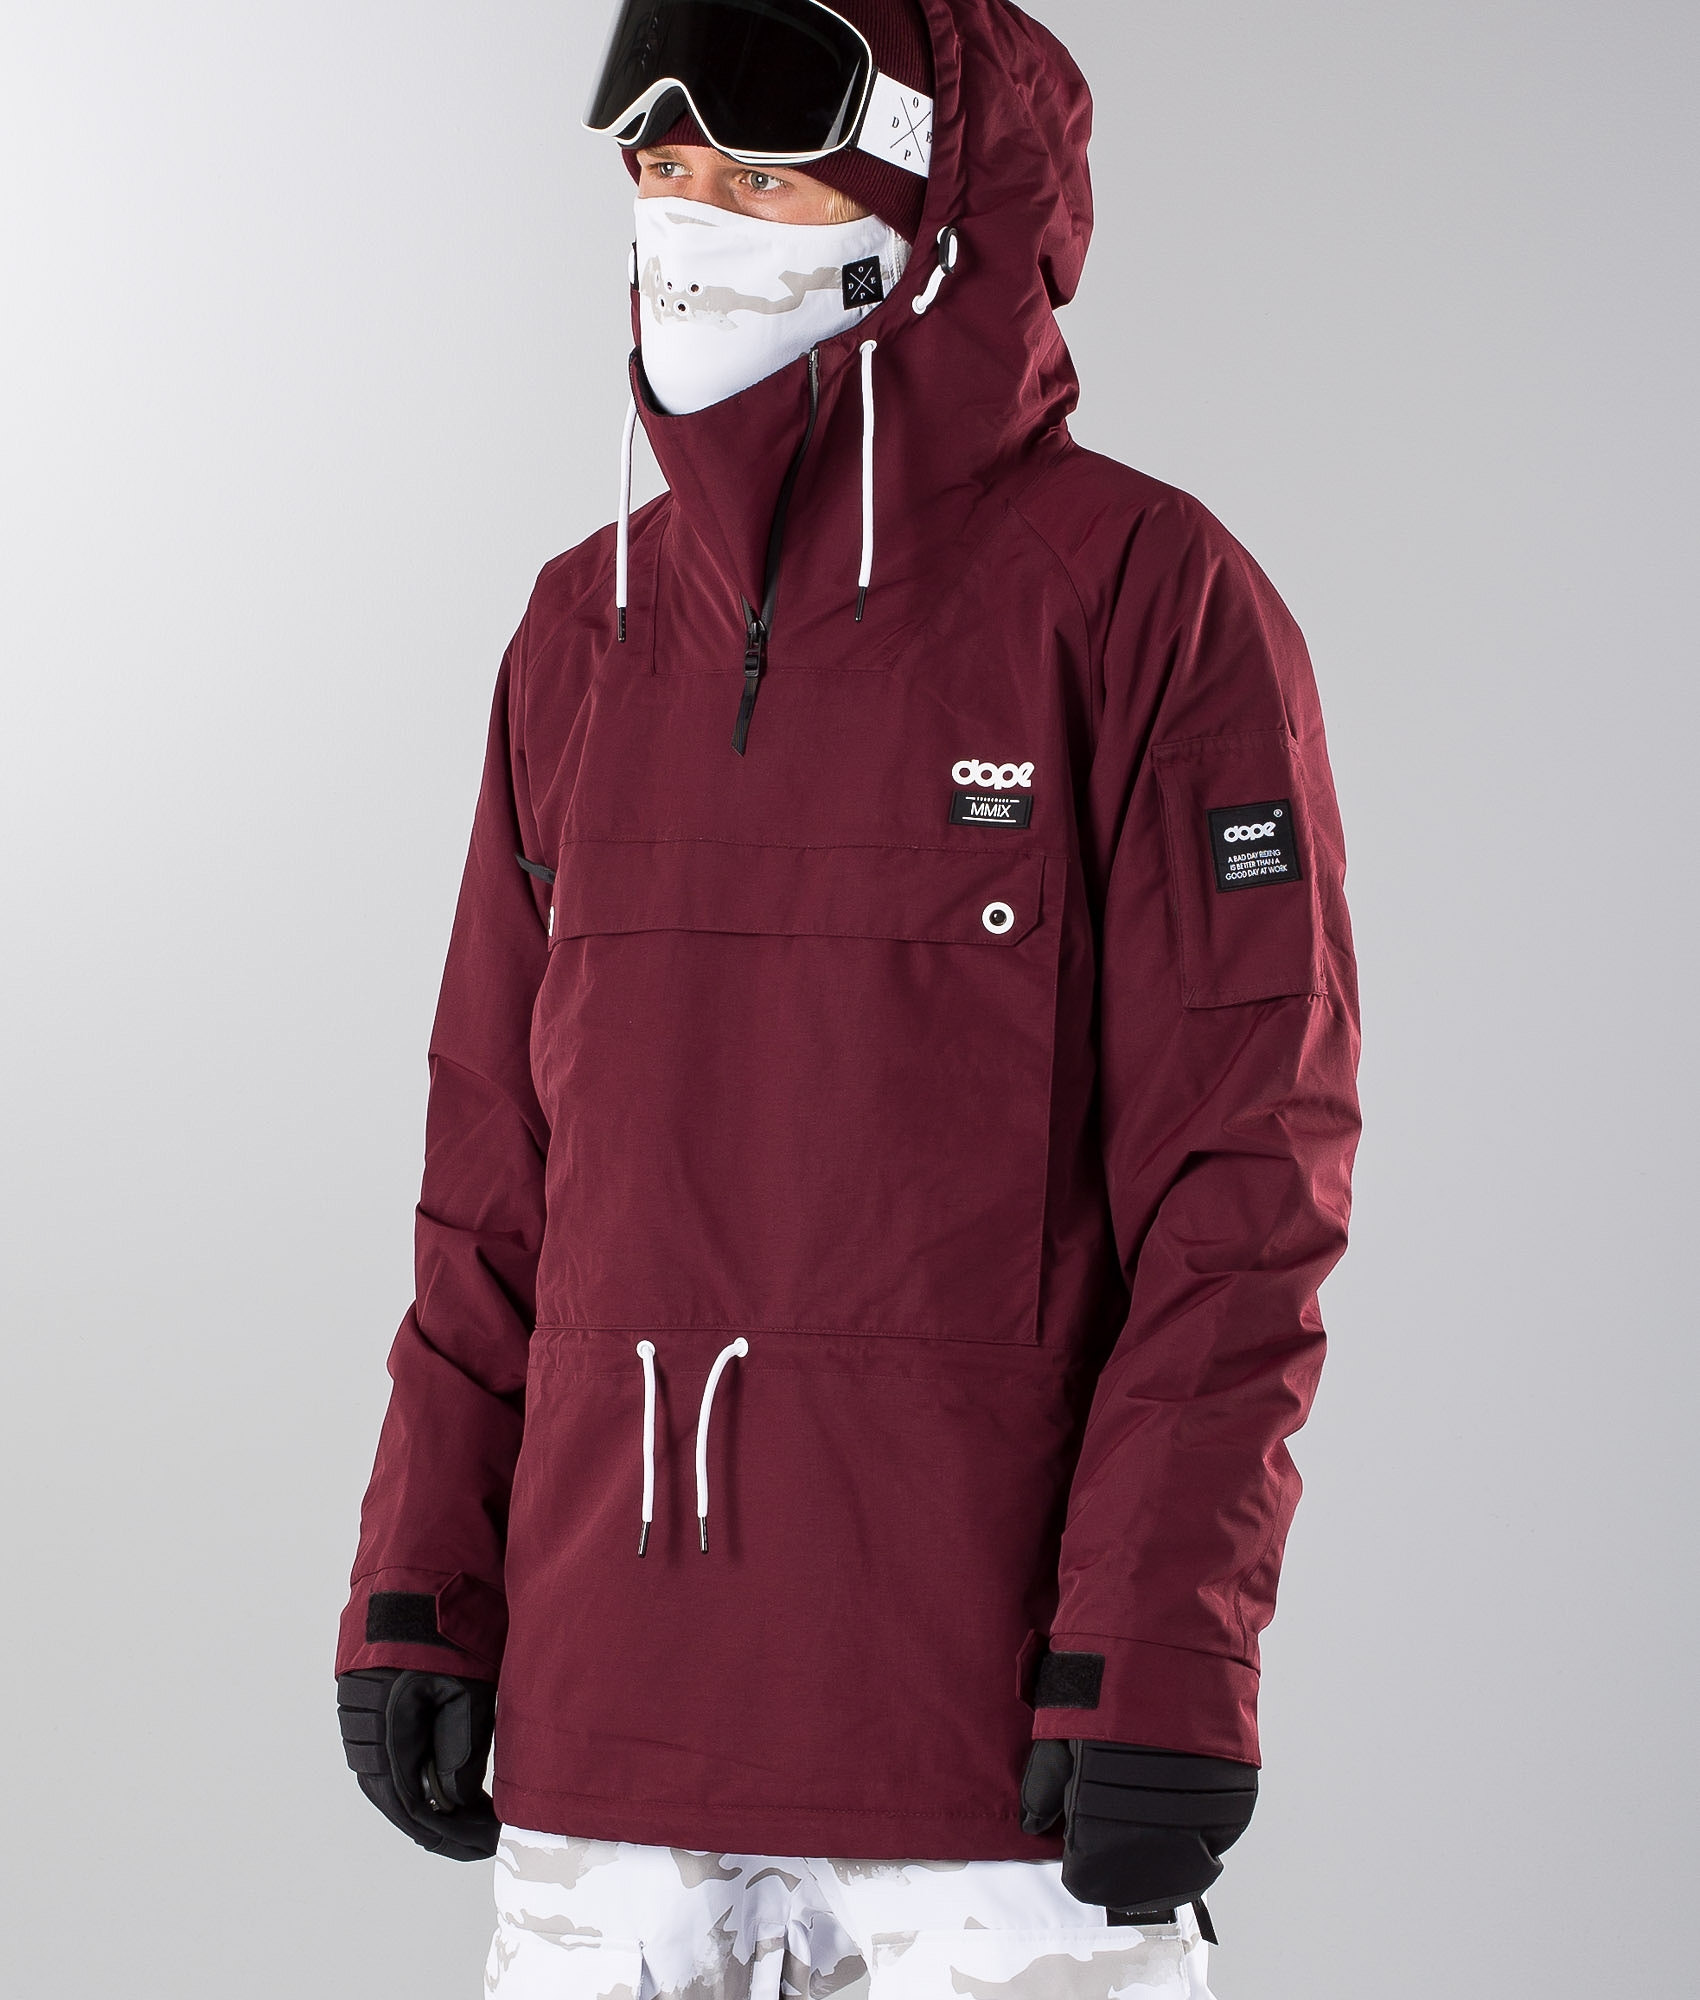 b1c0ef4fc Men's Snowboard Jackets   Fast & Free Delivery   RIDESTORE